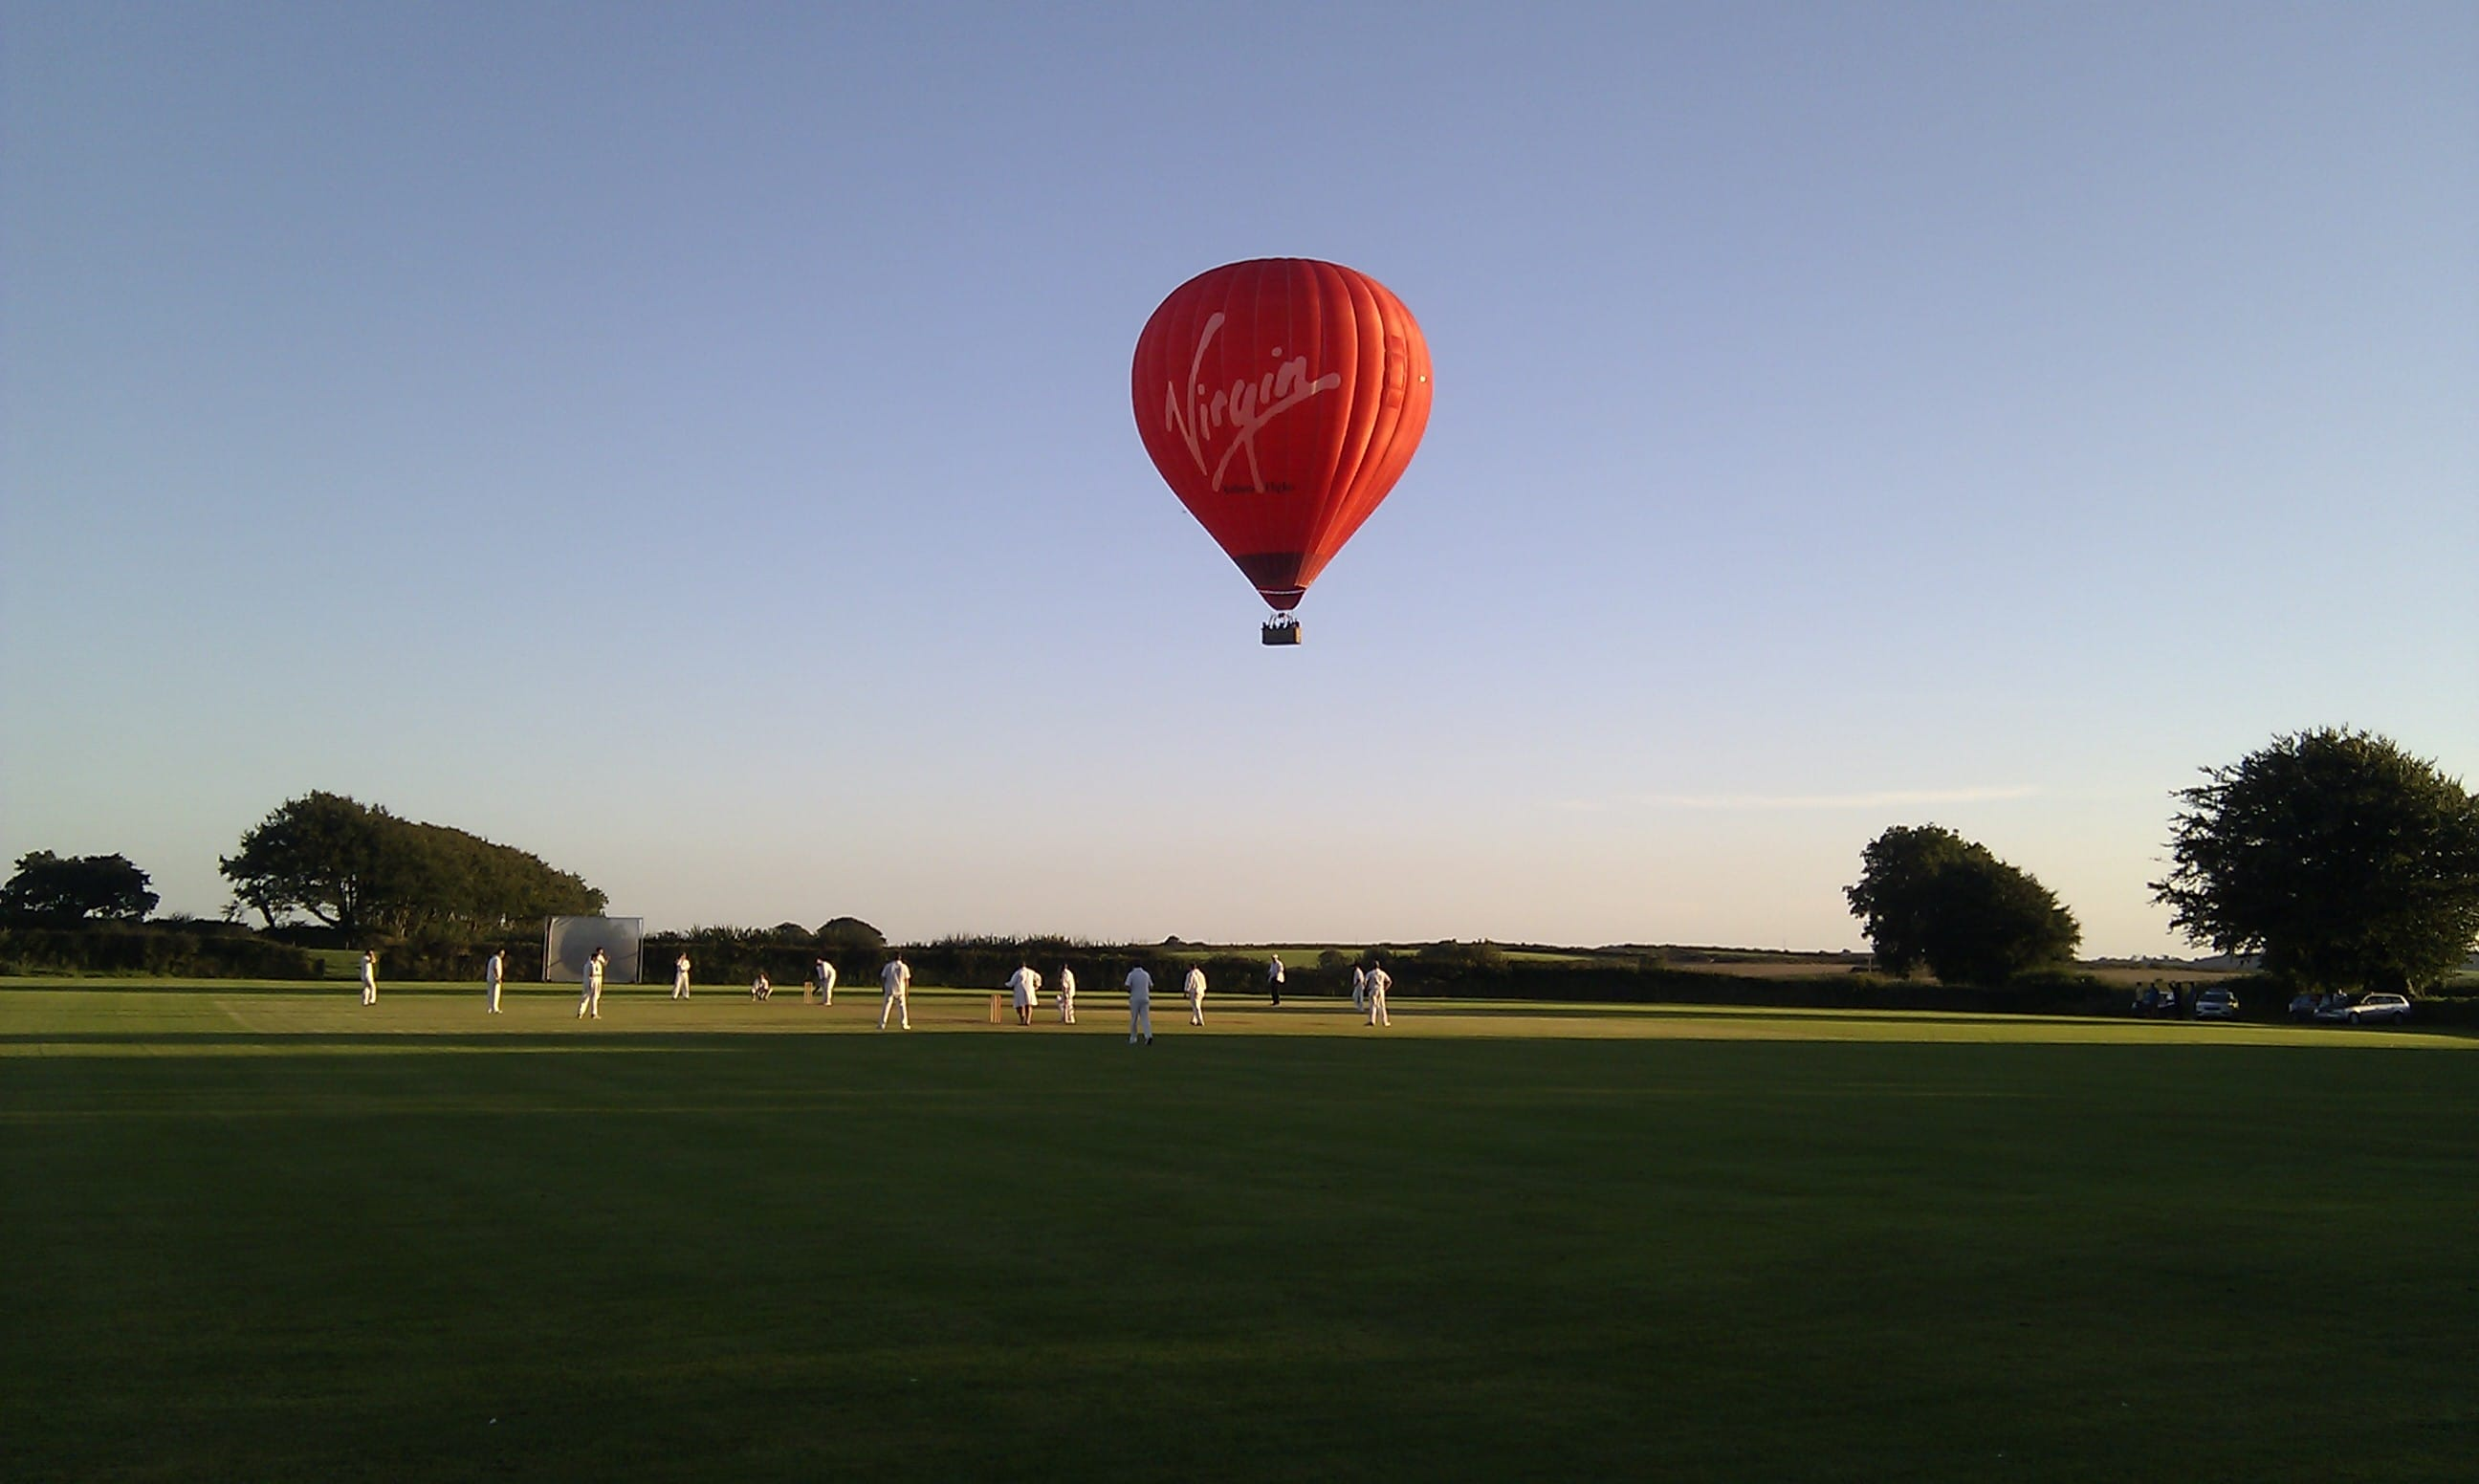 Virgin Hot Air Balloon Over Cornwall Cricket Match By Stephan Rowe